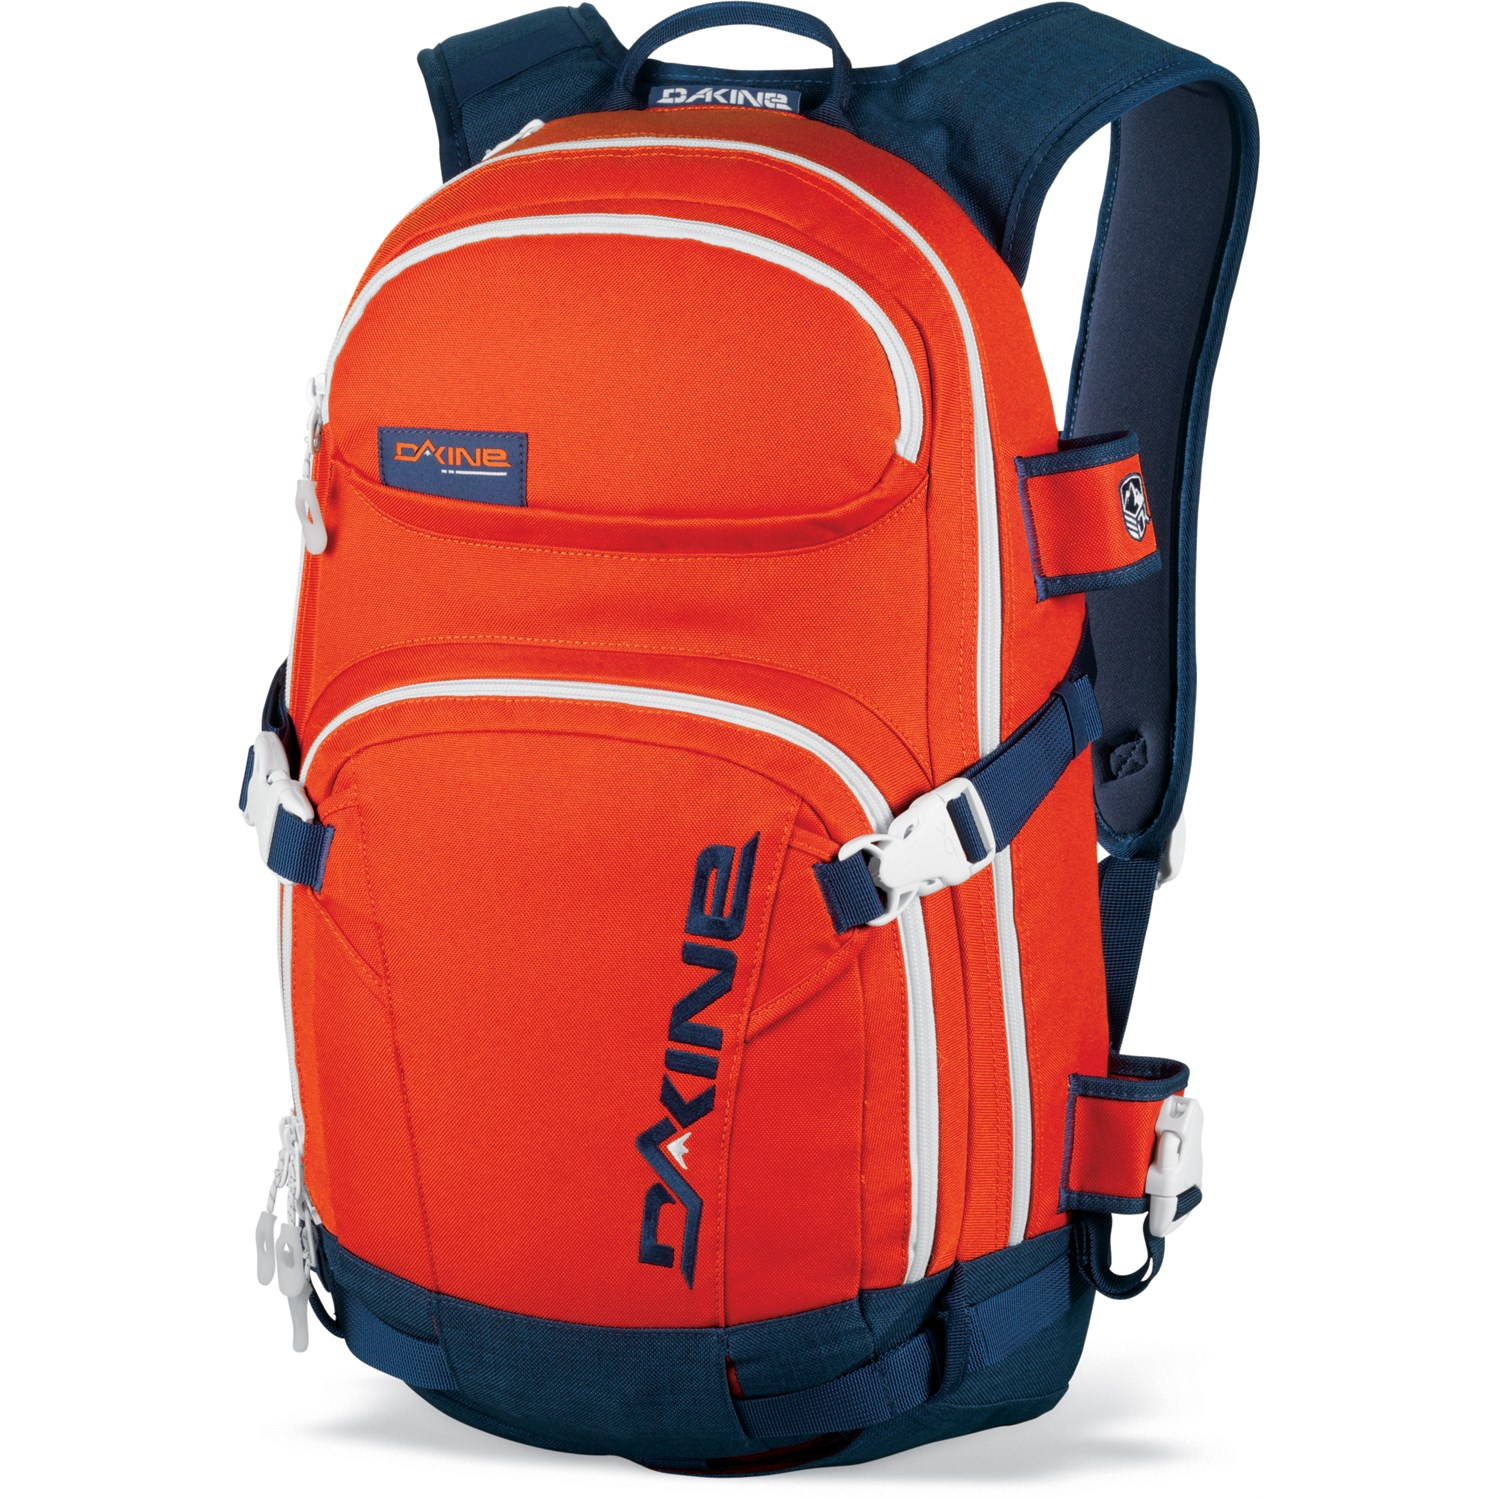 Stores That Sell Dakine Backpacks - Crazy Backpacks